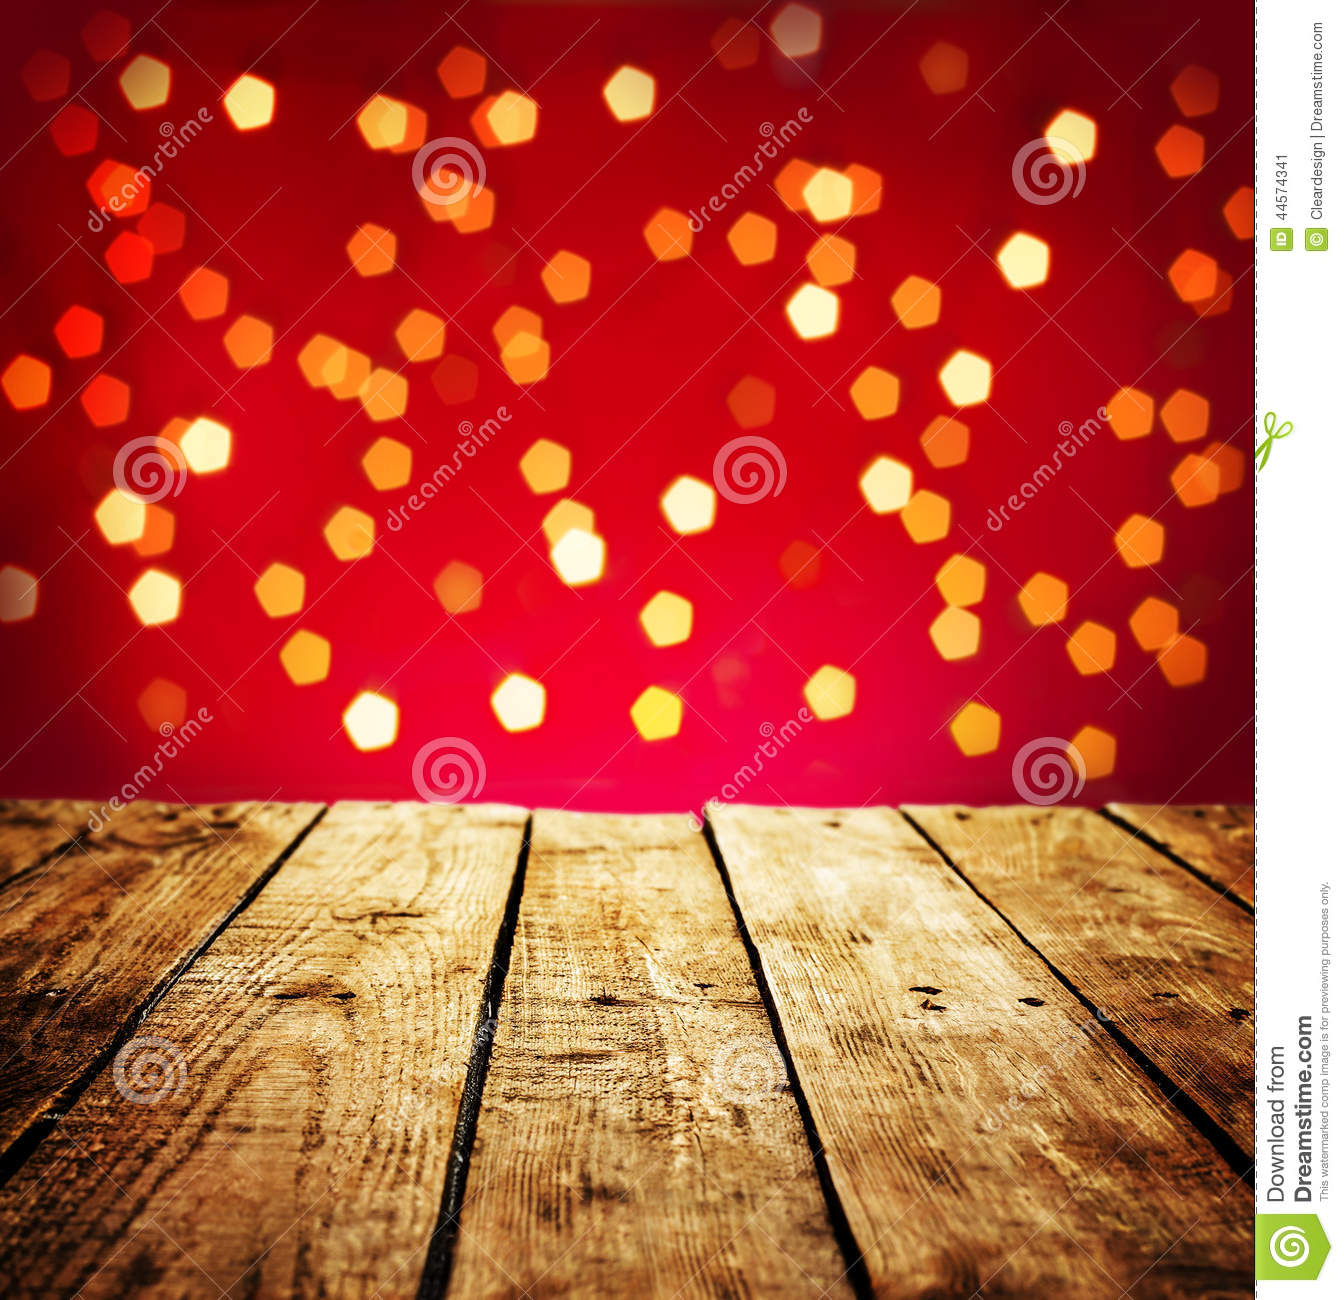 Christmas Background With Wood Table In Perspective Stock Photo ...